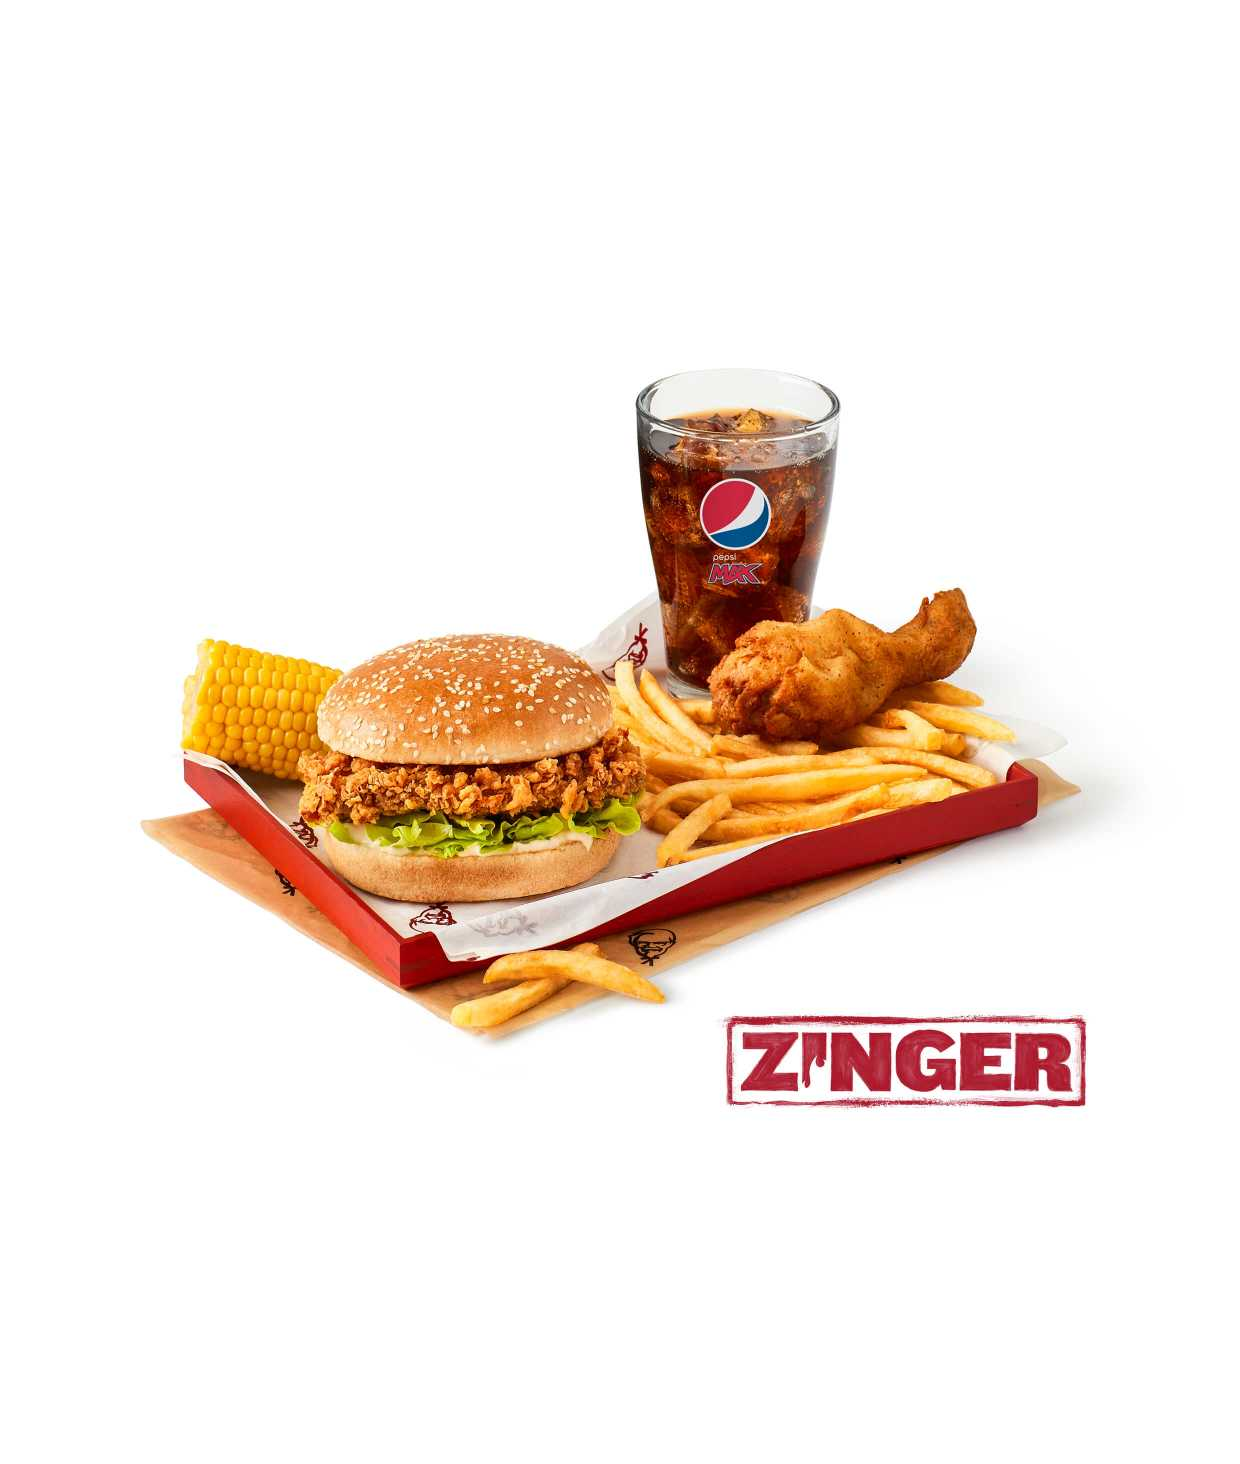 zingerburger-1pc-bxml-d04-620w@2x.jpeg